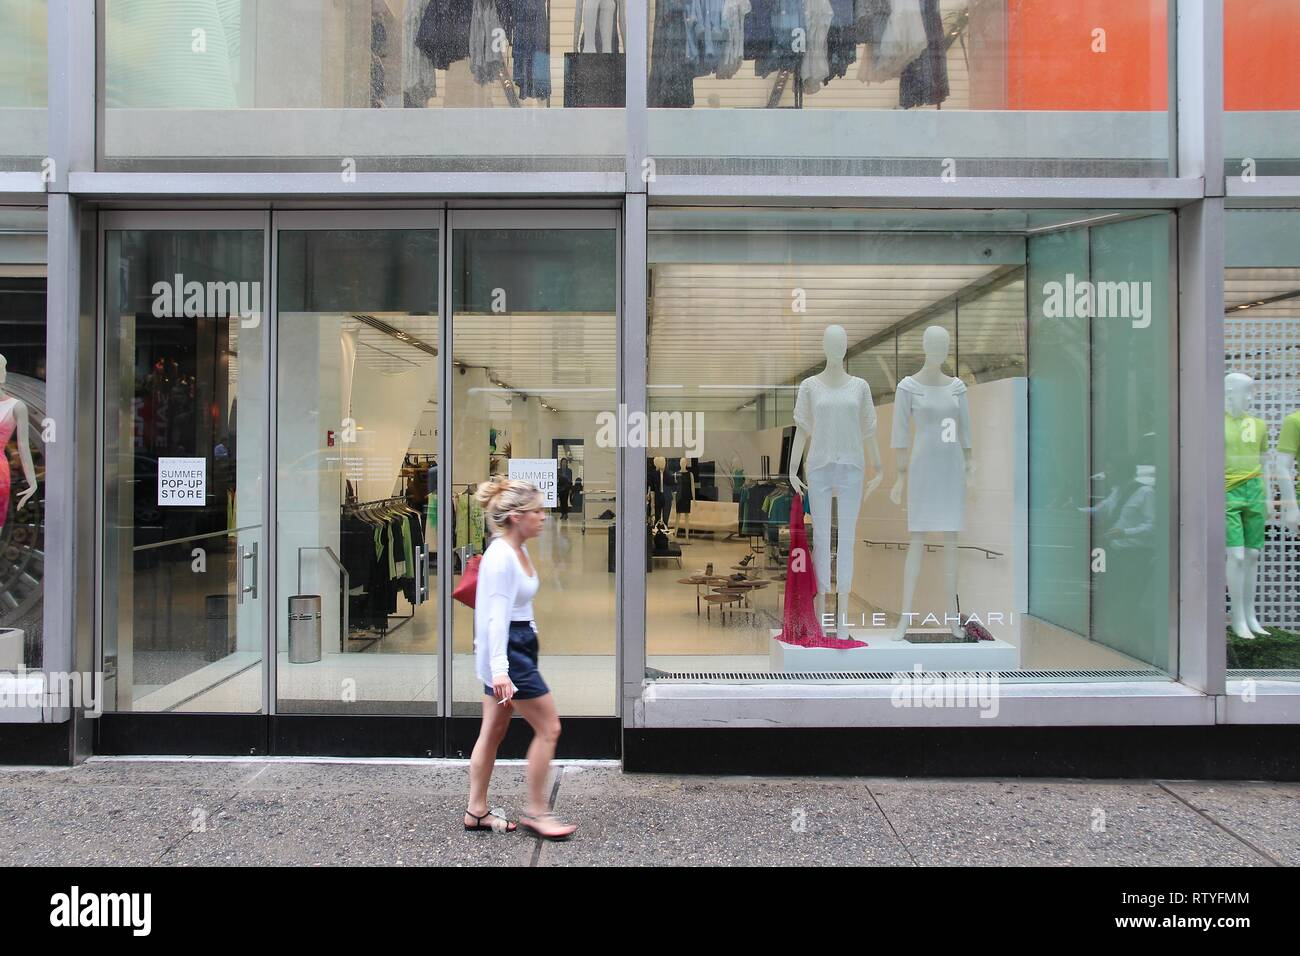 New York Usa July 1 2013 Person Walks By Elie Tahari Store In 5th Avenue New York Elie Tahari Is An Iranian American Fashion Designer And His B Stock Photo Alamy